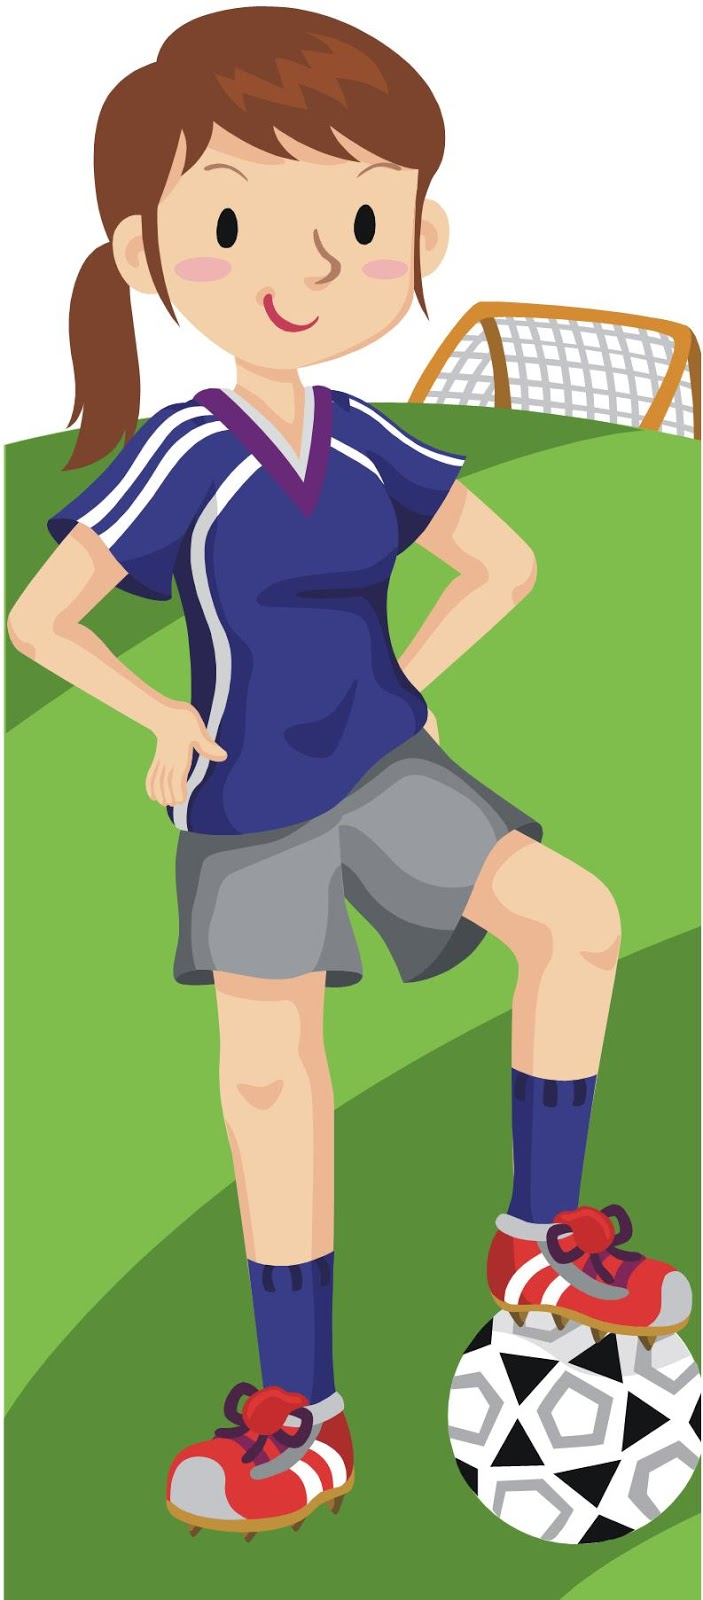 Club clipart middle school Free soccer Images ClipartMonk Art